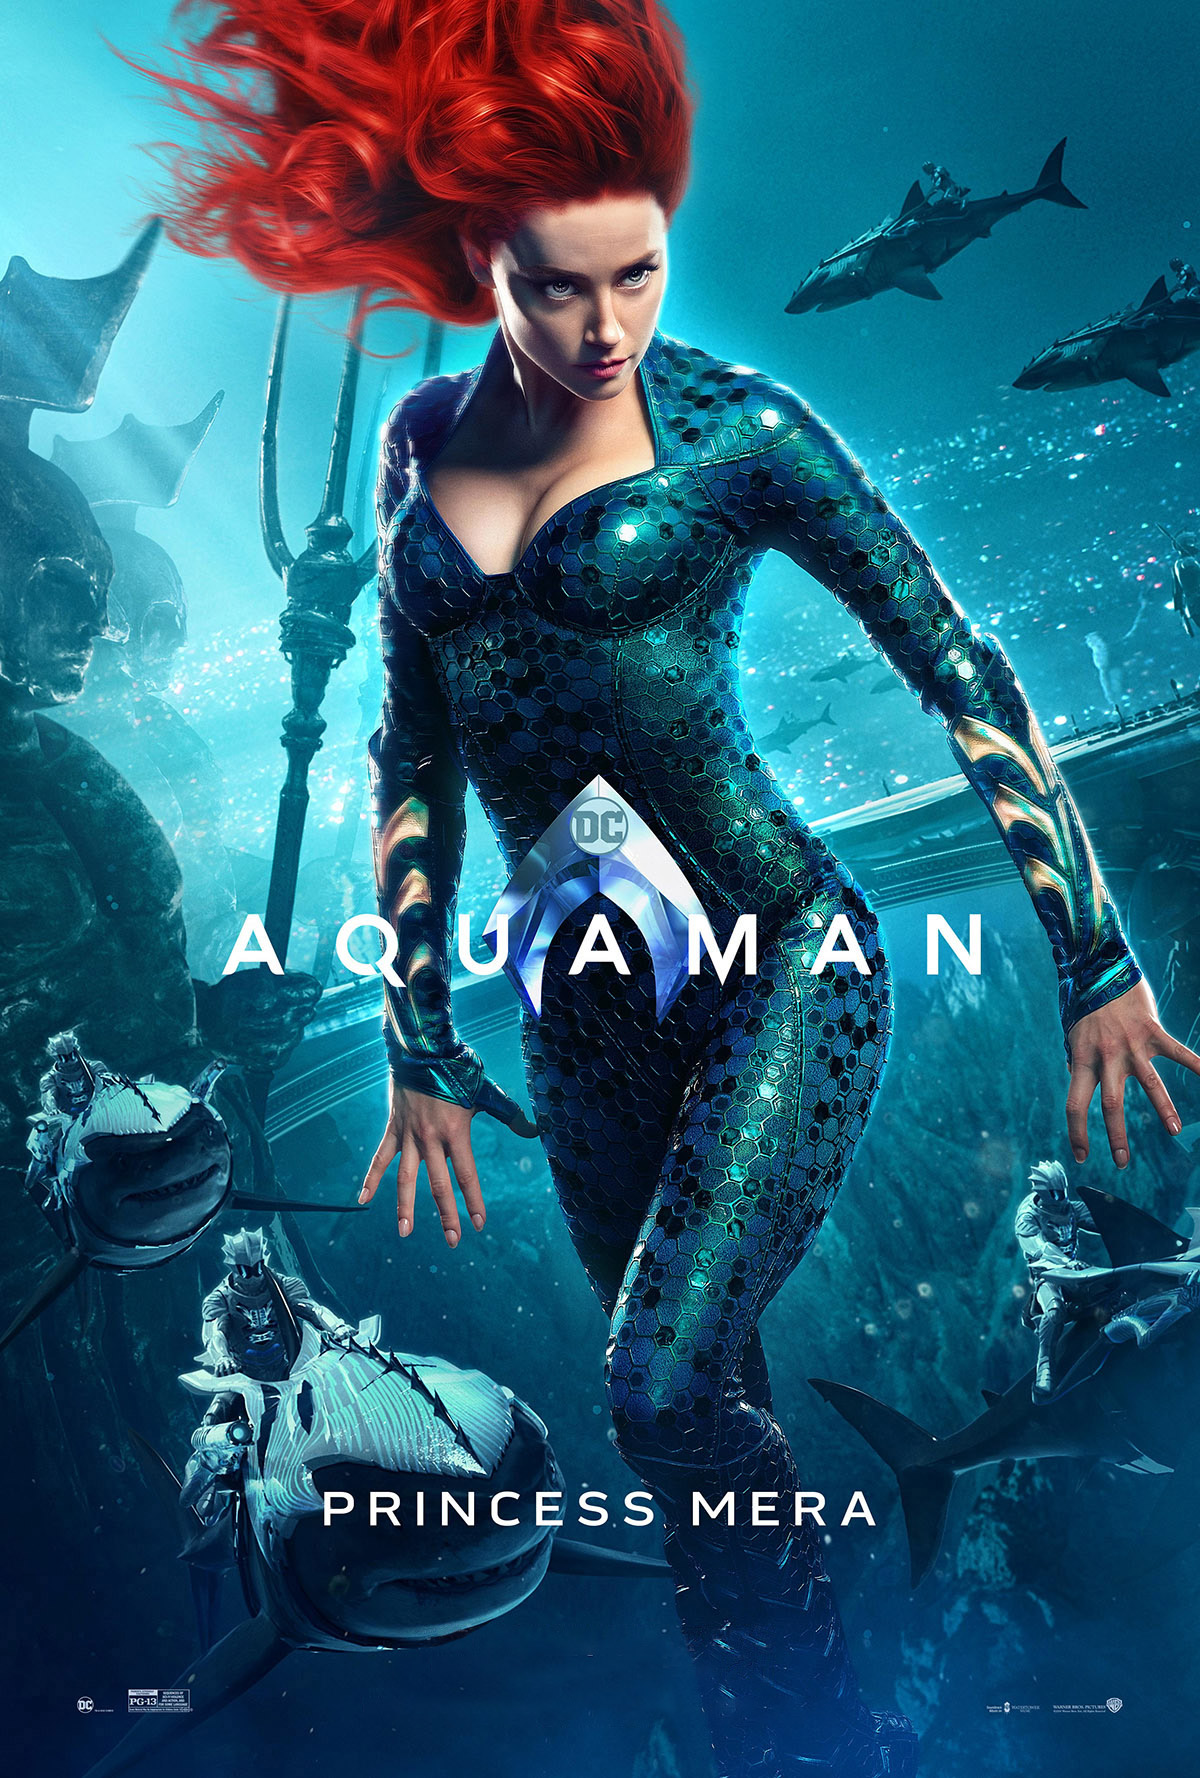 Aquaman Movie Official Website - Available Now On Blu-Ray™ And Digital